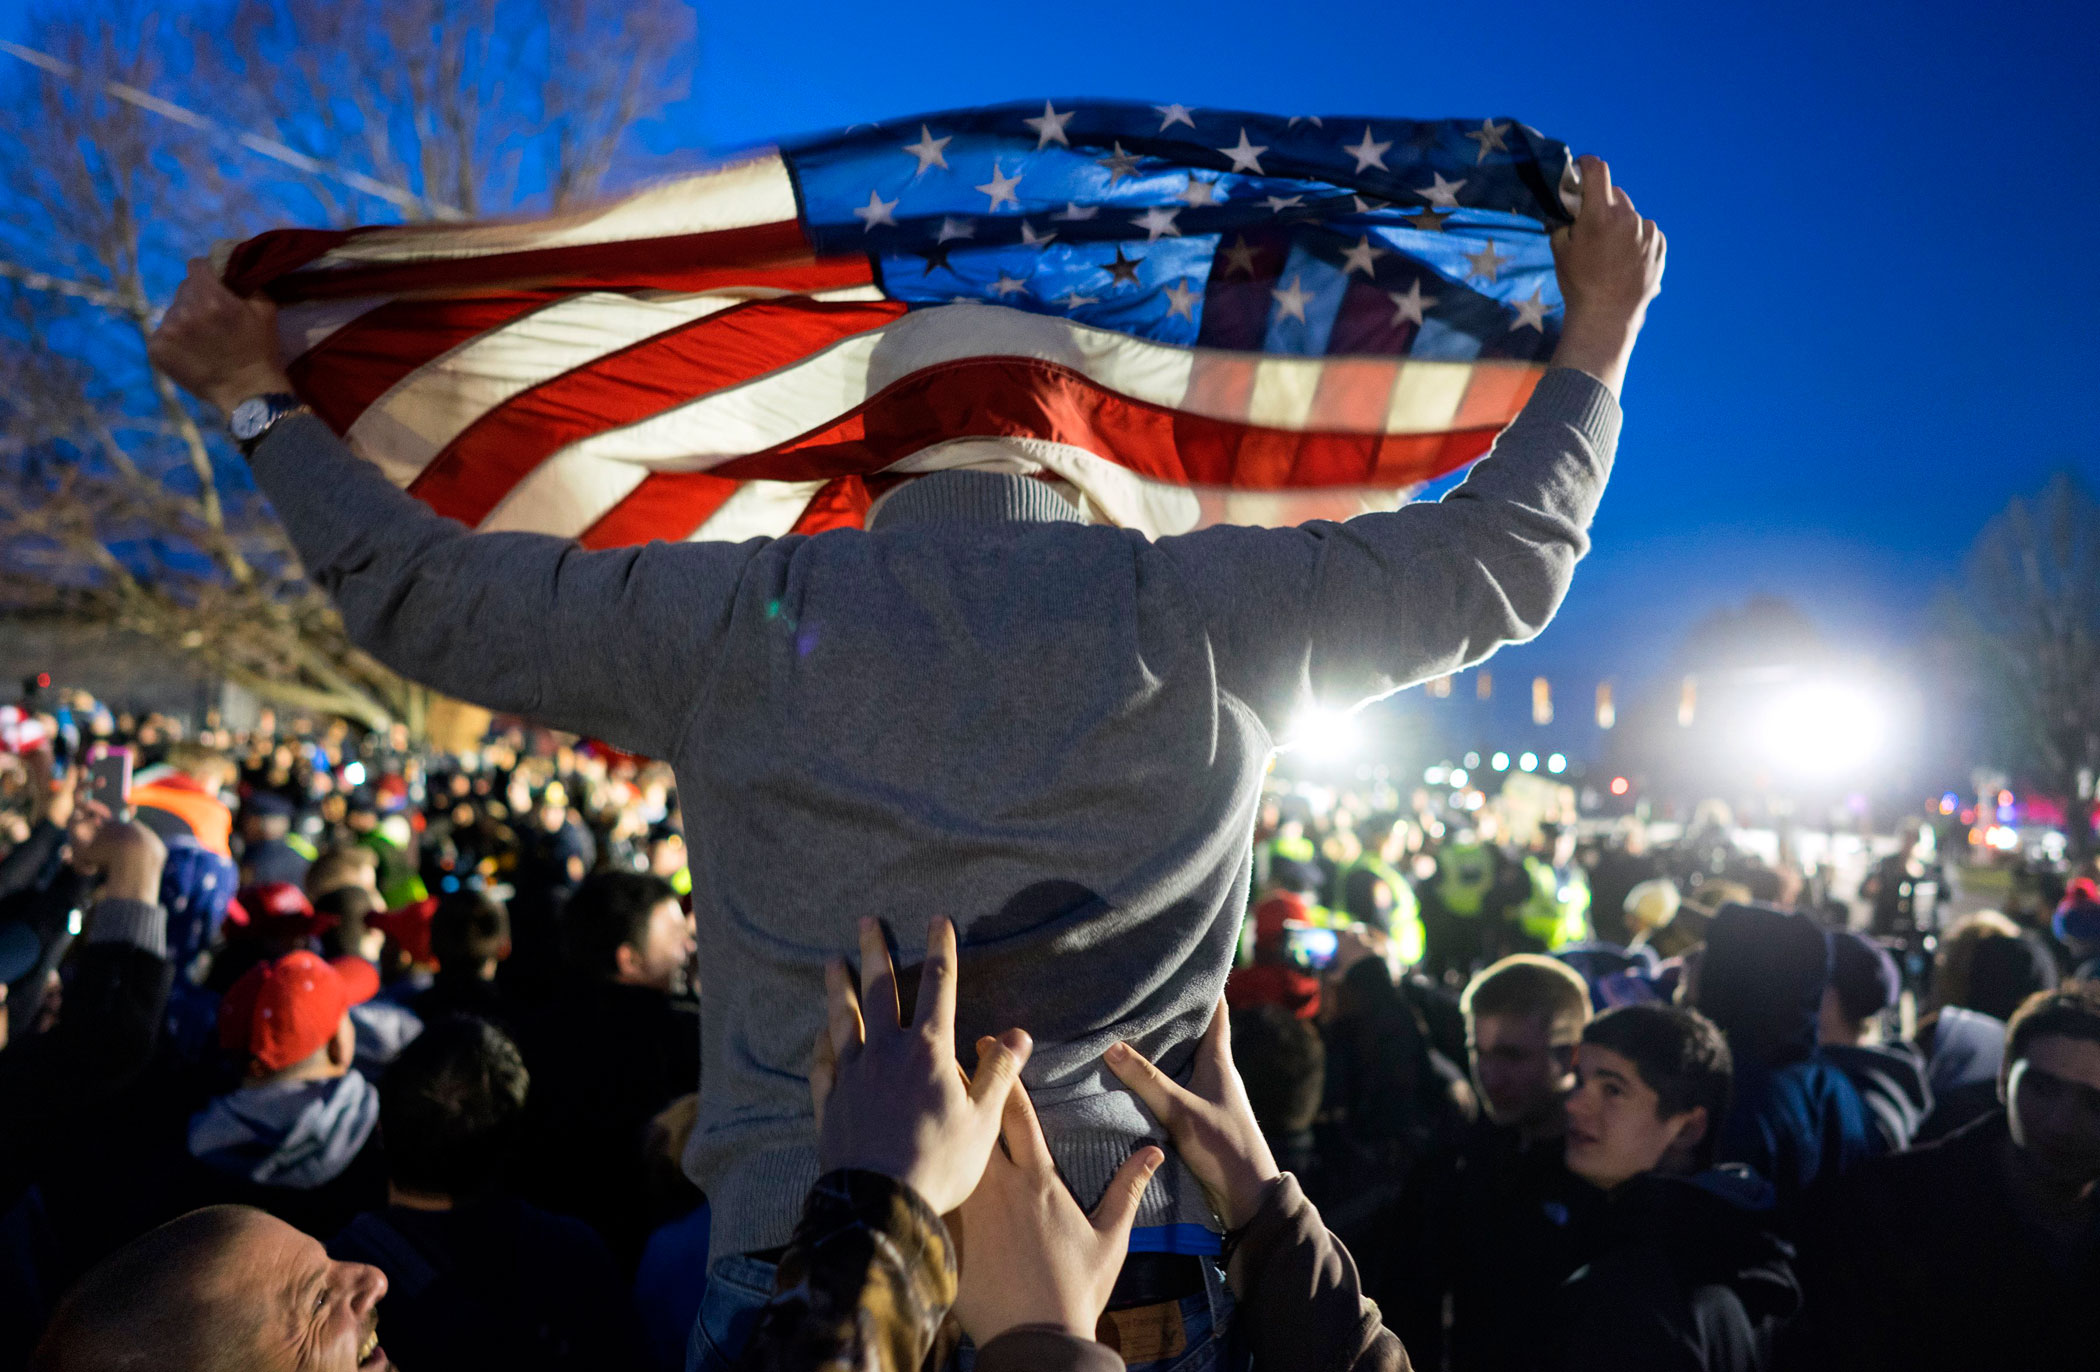 A Donald Trump supporter is hoisted up while facing protesters  near the site of a campaign appearance by the Republican presidential candidate in Bethpage, N.Y. on April 6, 2016.